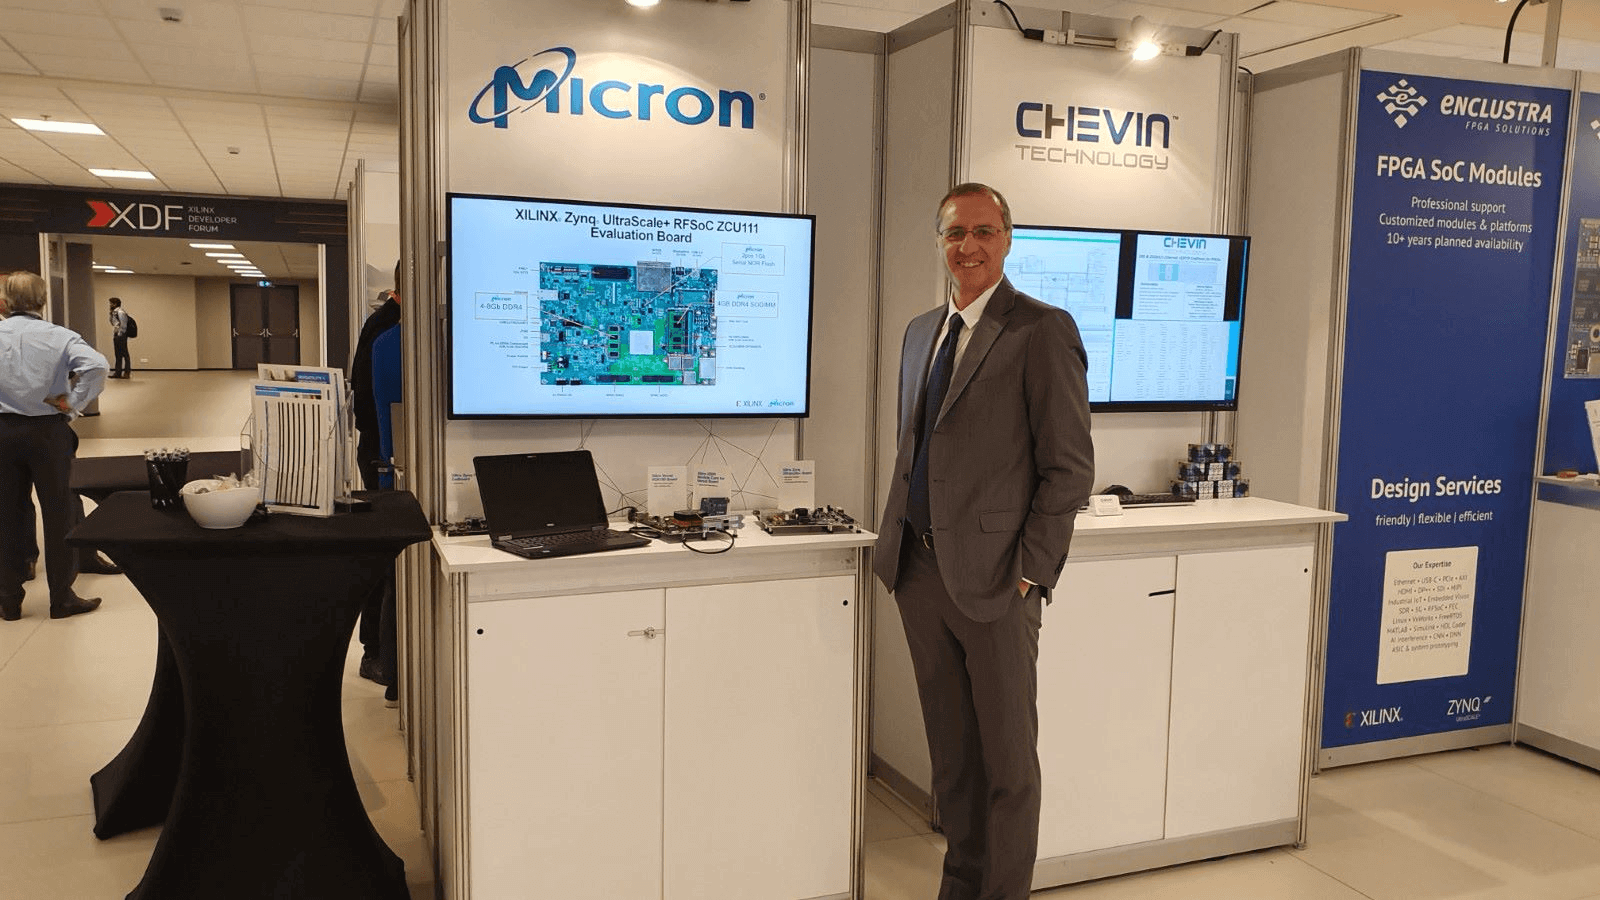 Micron booth at XDF